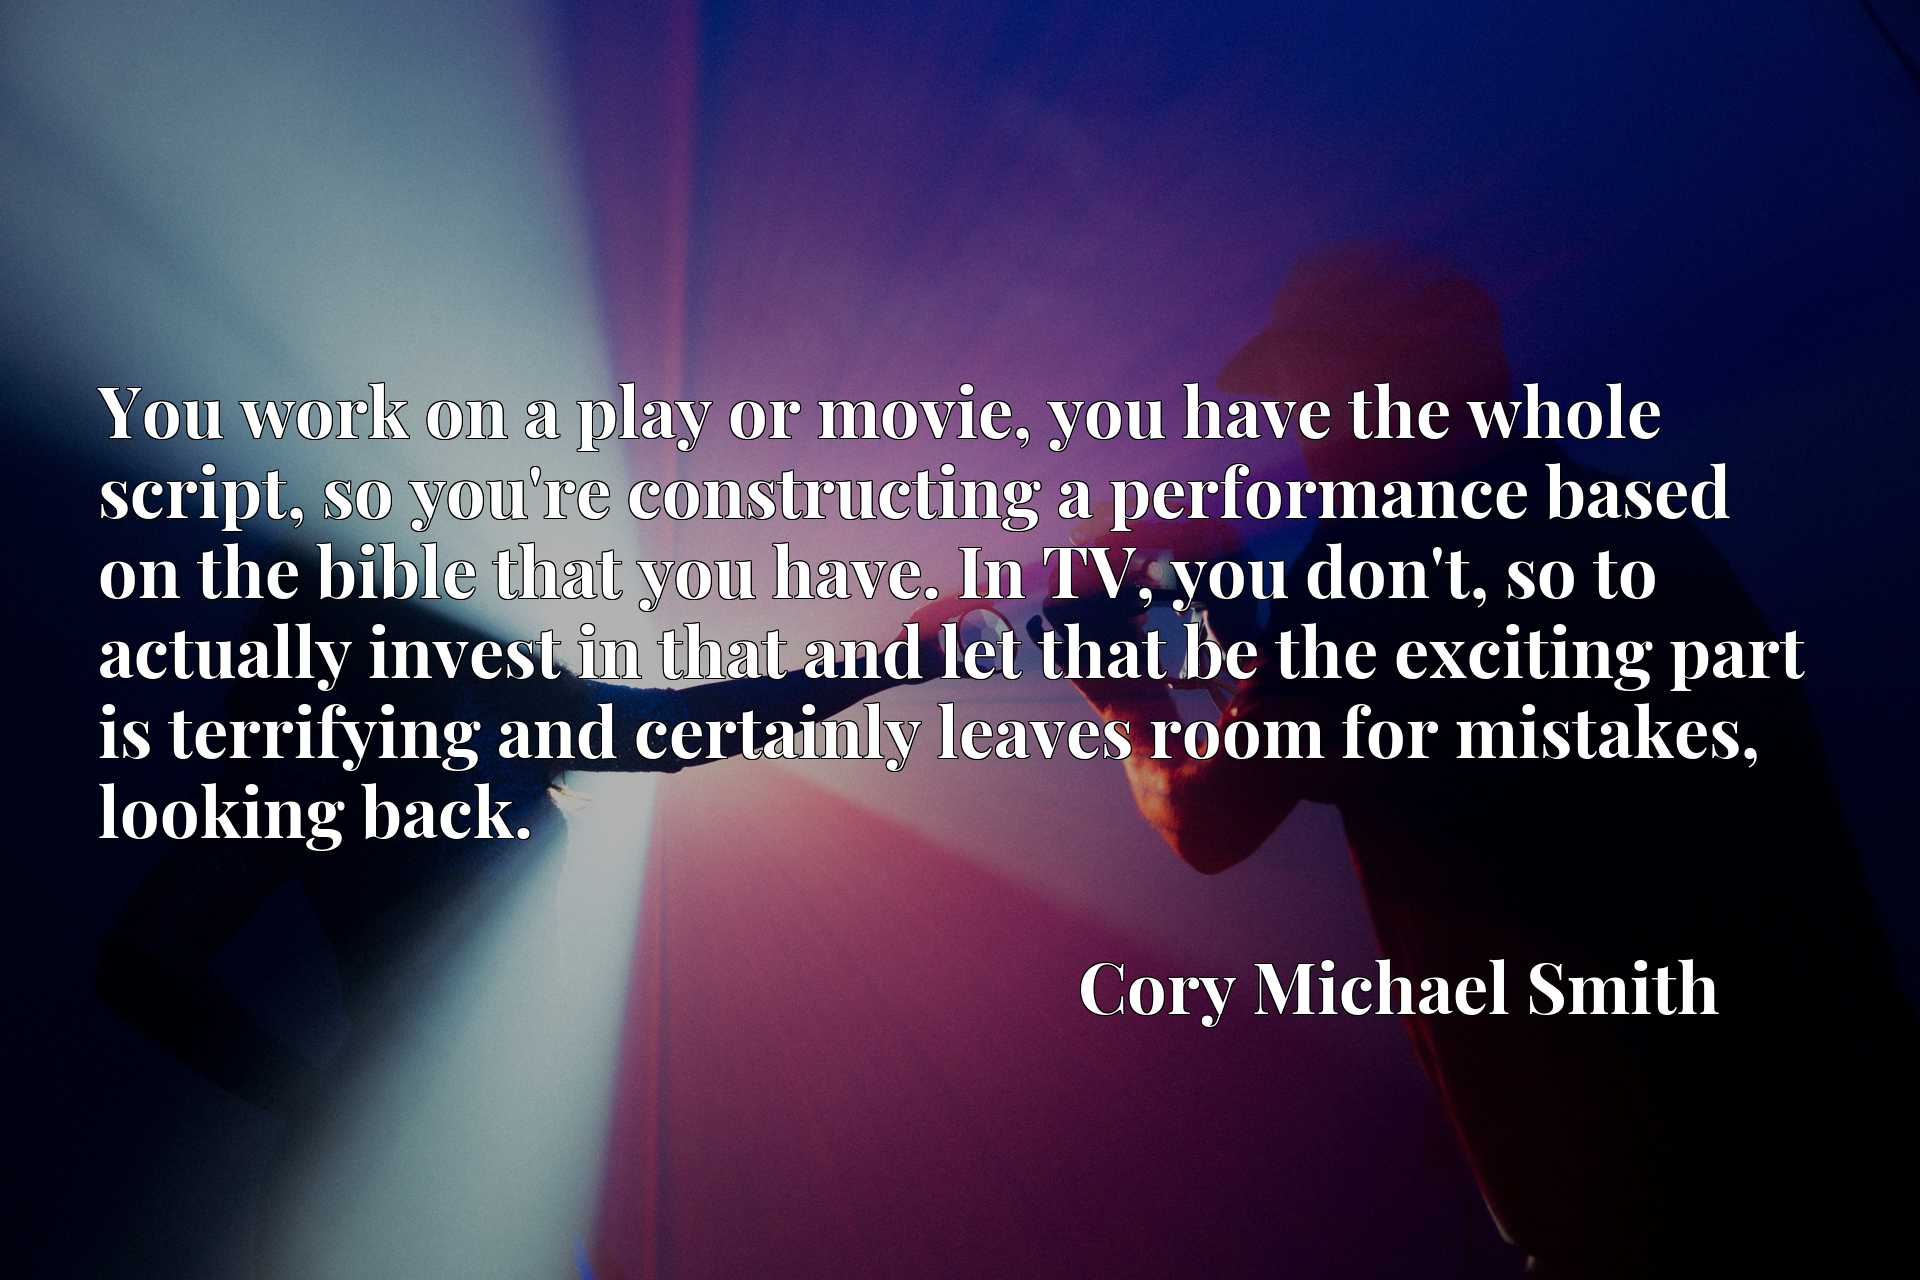 You work on a play or movie, you have the whole script, so you're constructing a performance based on the bible that you have. In TV, you don't, so to actually invest in that and let that be the exciting part is terrifying and certainly leaves room for mistakes, looking back.